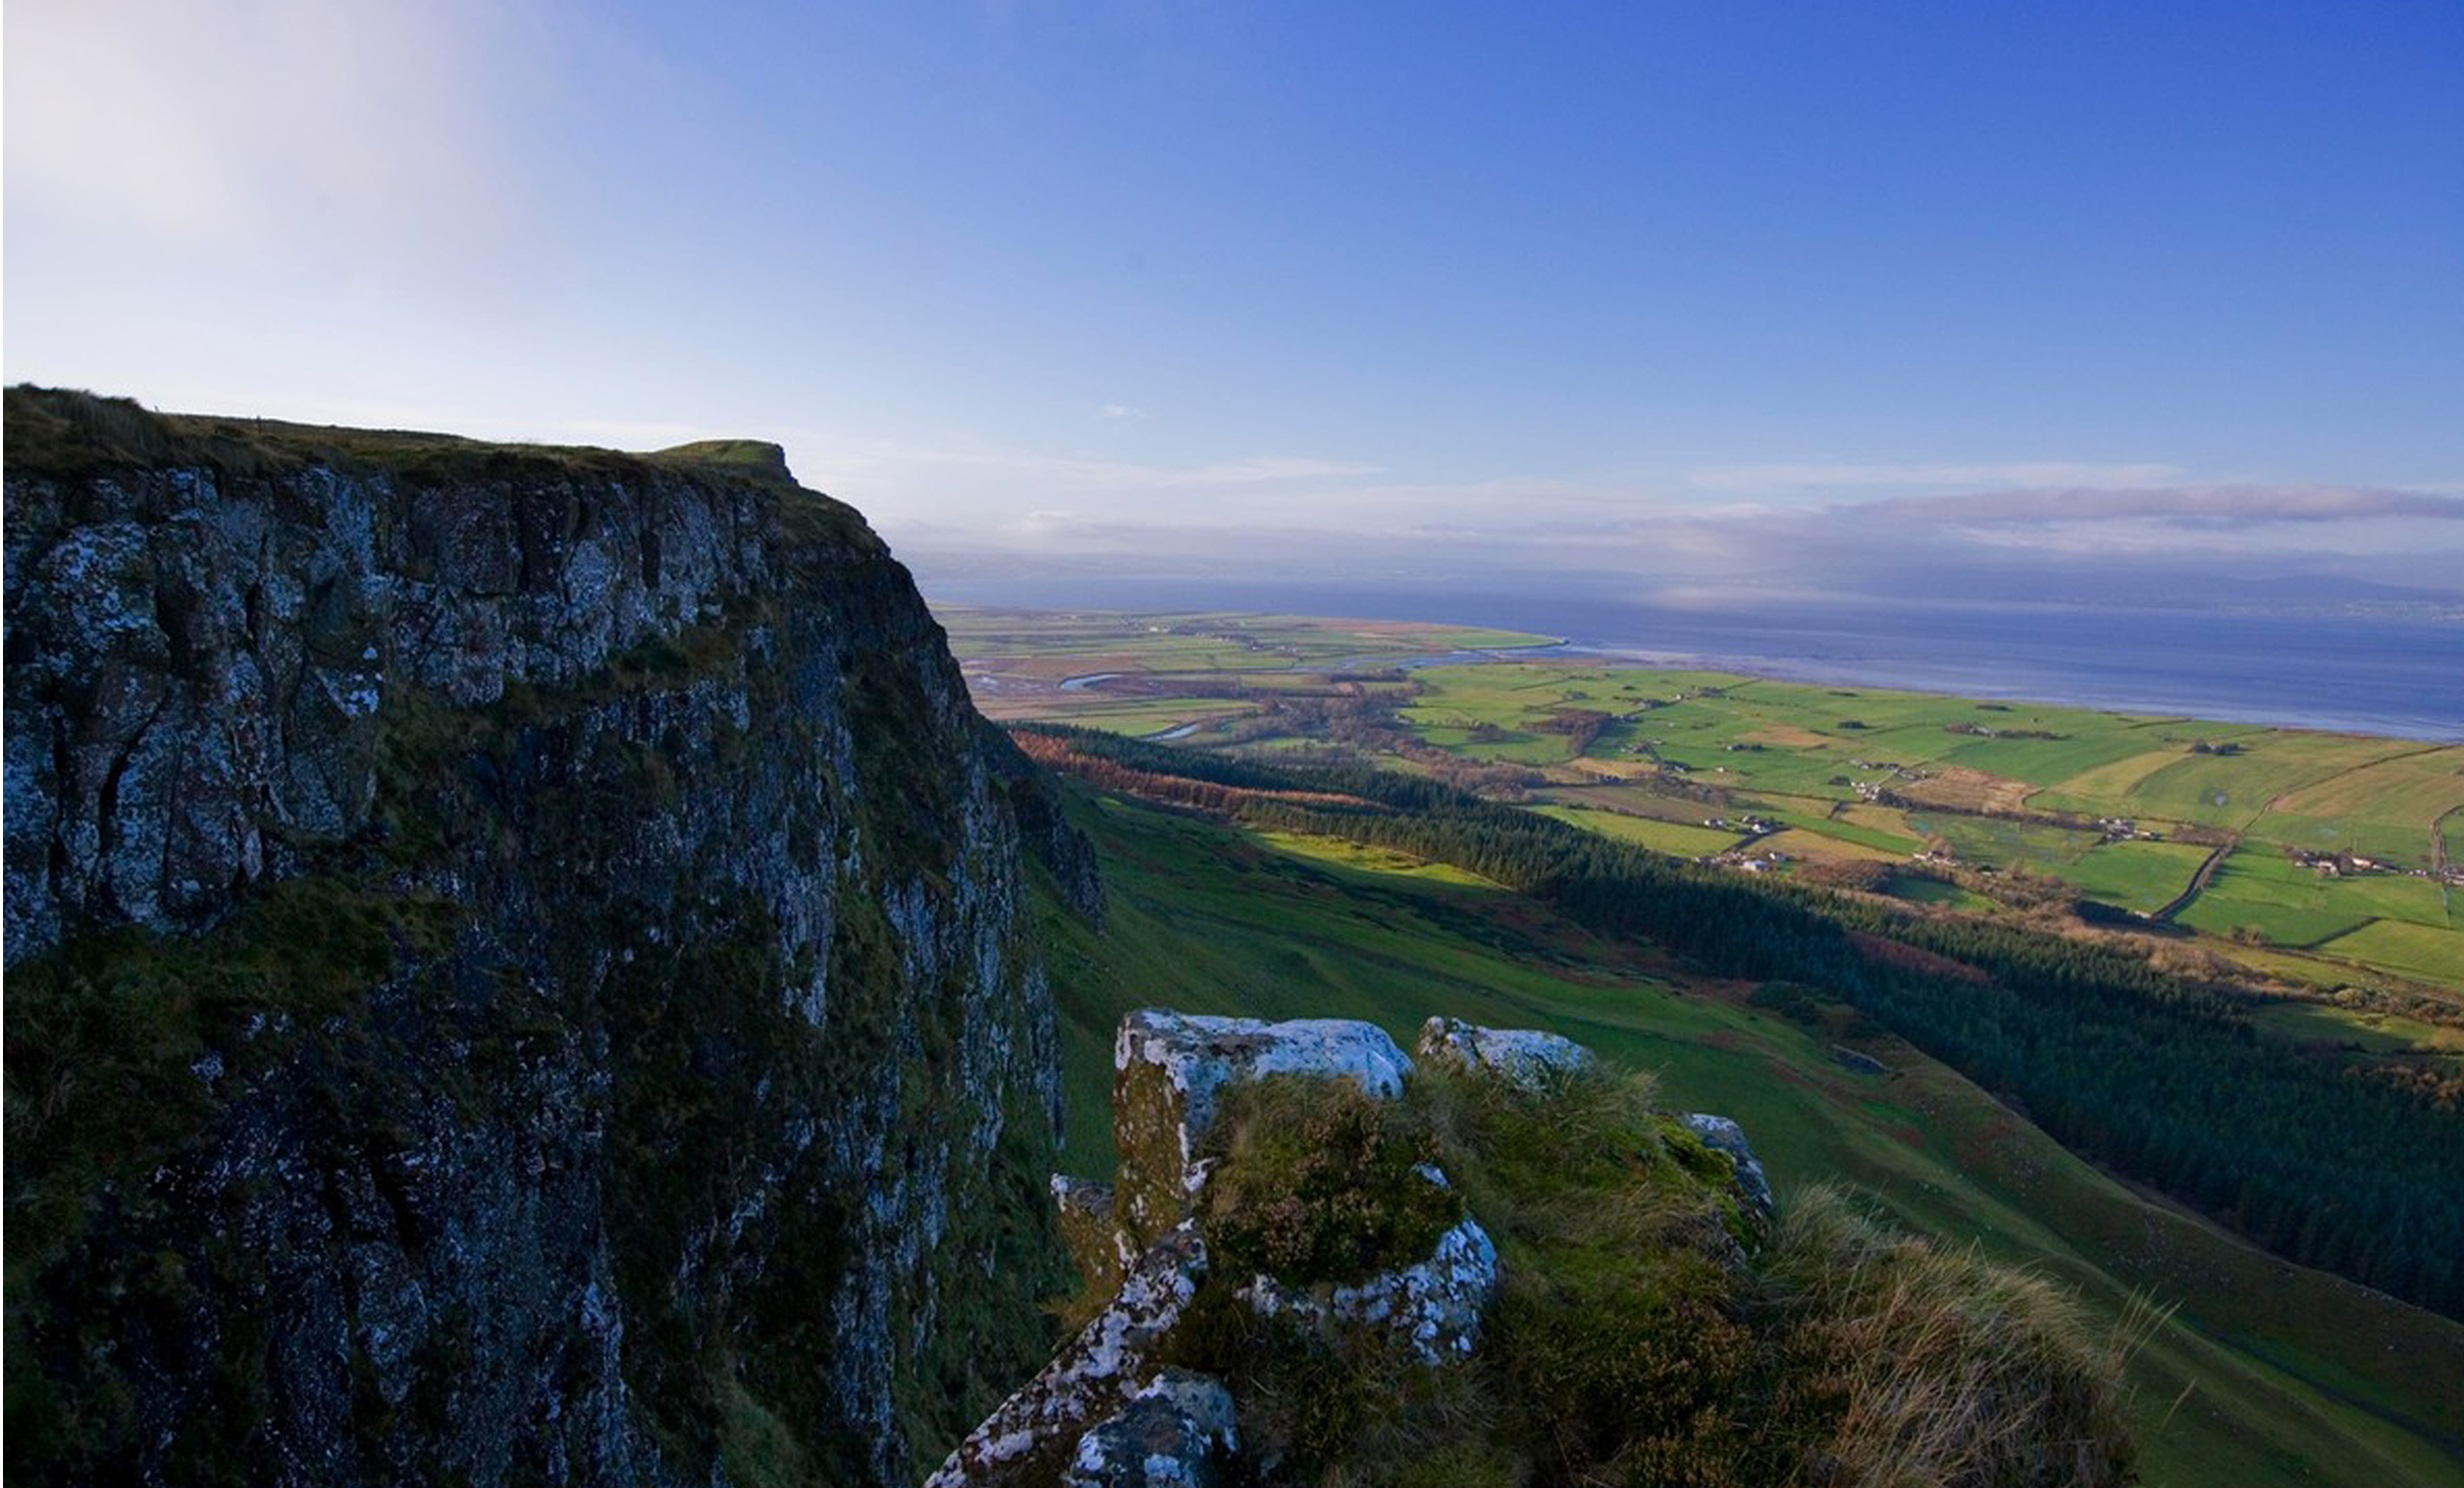 View from top of a mountain in Northern Ireland